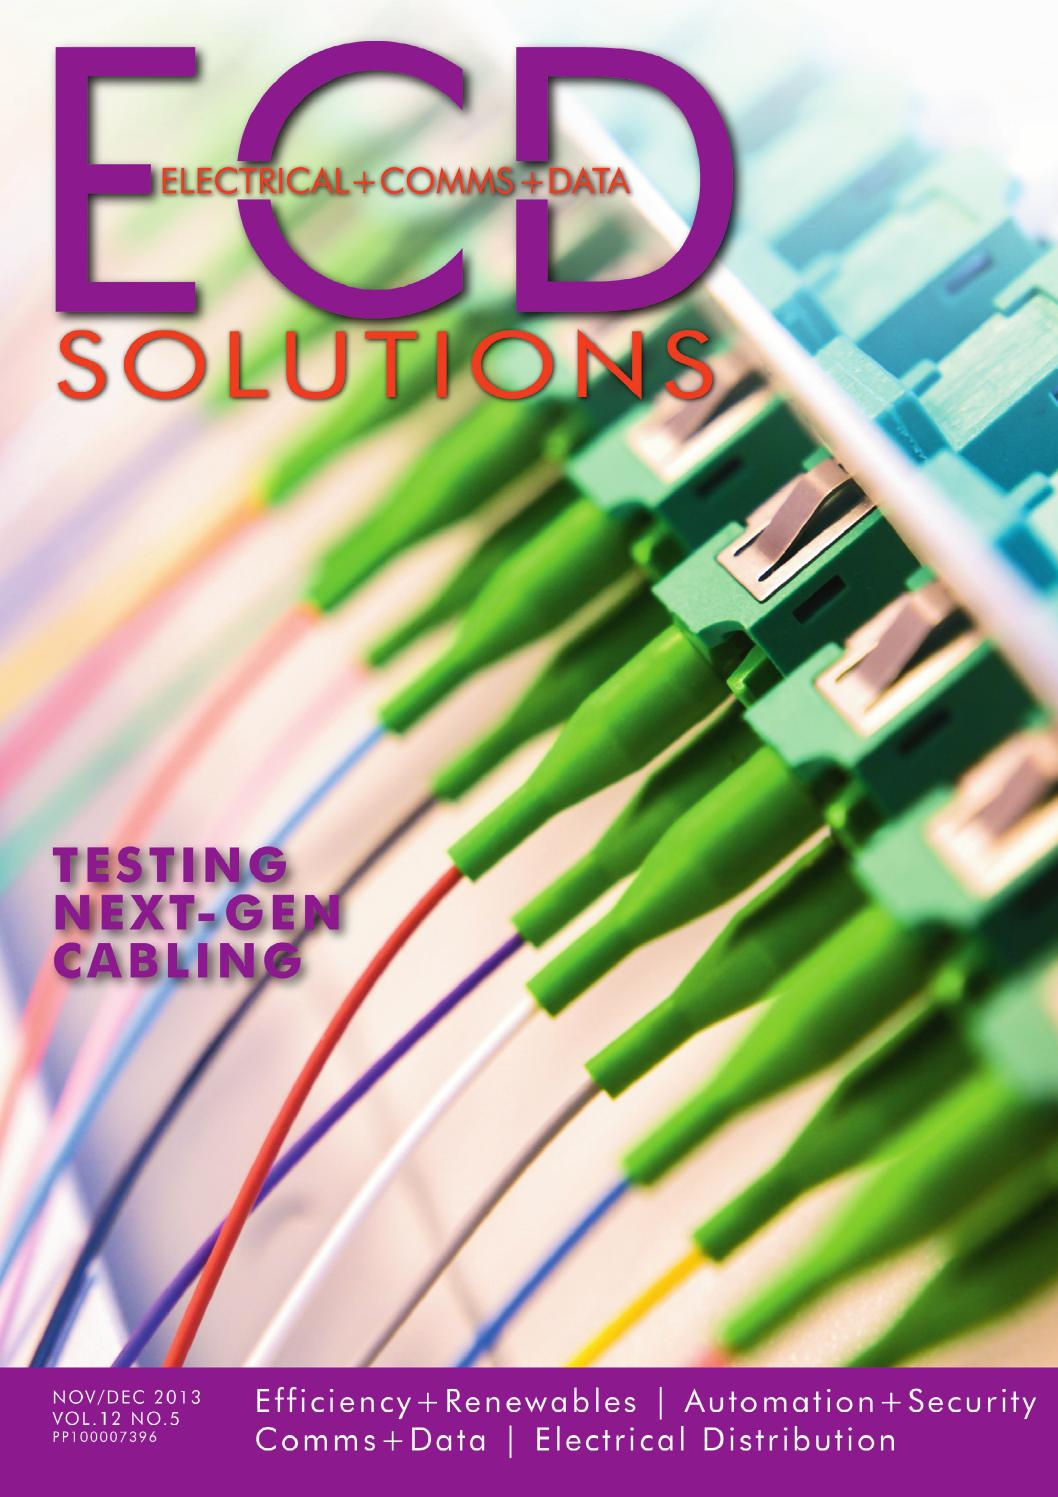 Ecd Solutions Nov Dec 2013 By Westwick Farrow Media Issuu Usb Rj45 Cable Wiring Diagram How To Build An Apc Ups Data Page